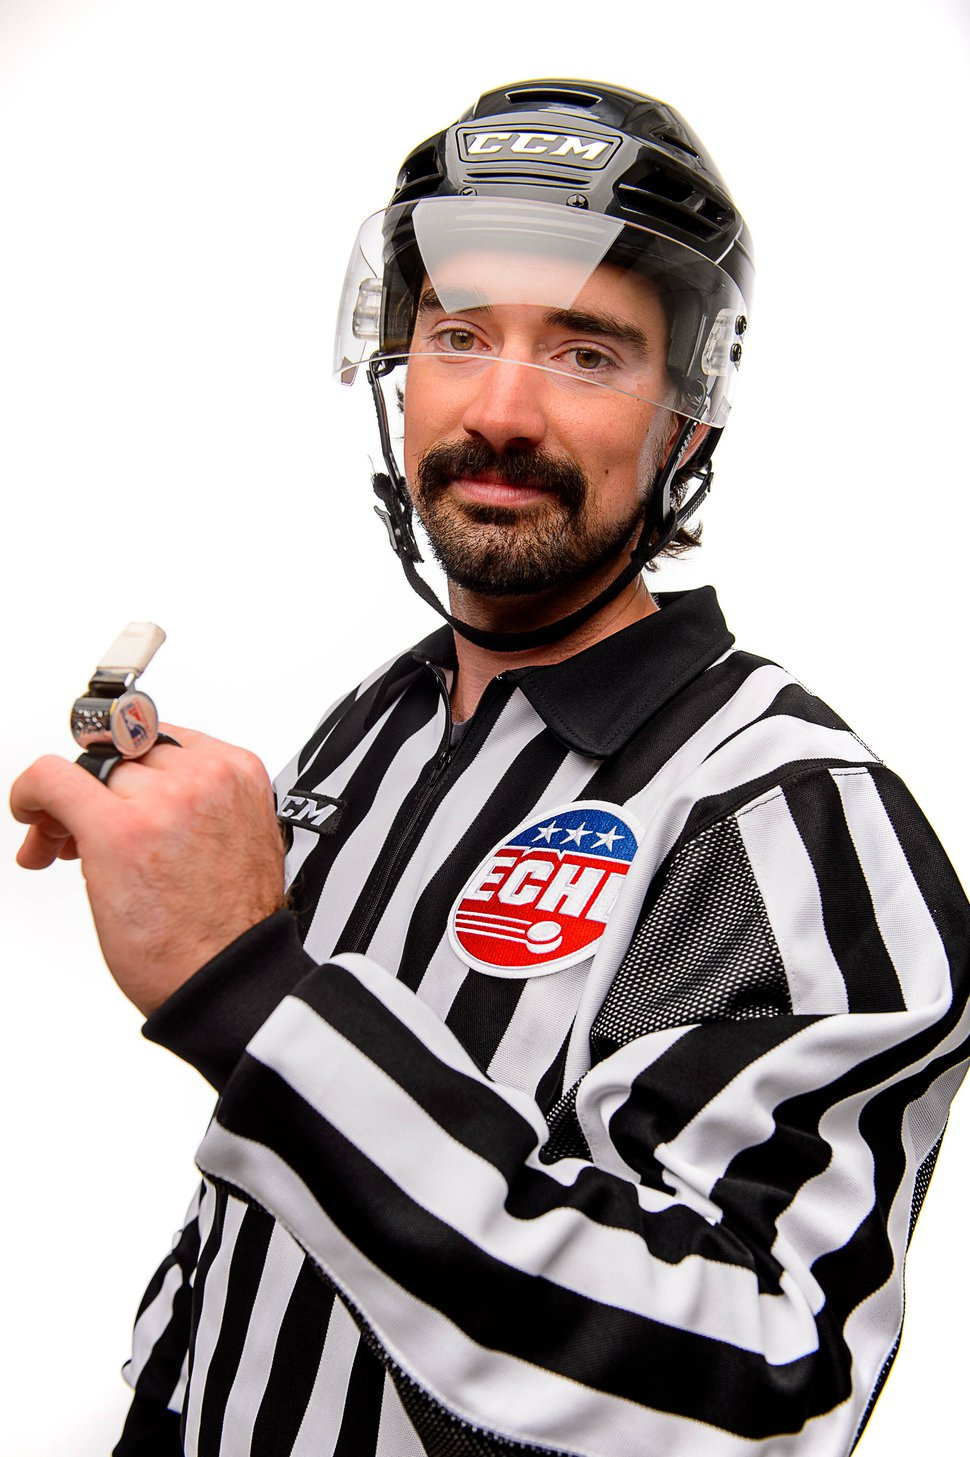 (Trent Nelson | The Salt Lake Tribune) Kollin Kleinendorst, who works part time as a referee at Utah Grizzlies games for the ECHL, in Salt Lake City, Tuesday August 29, 2017.